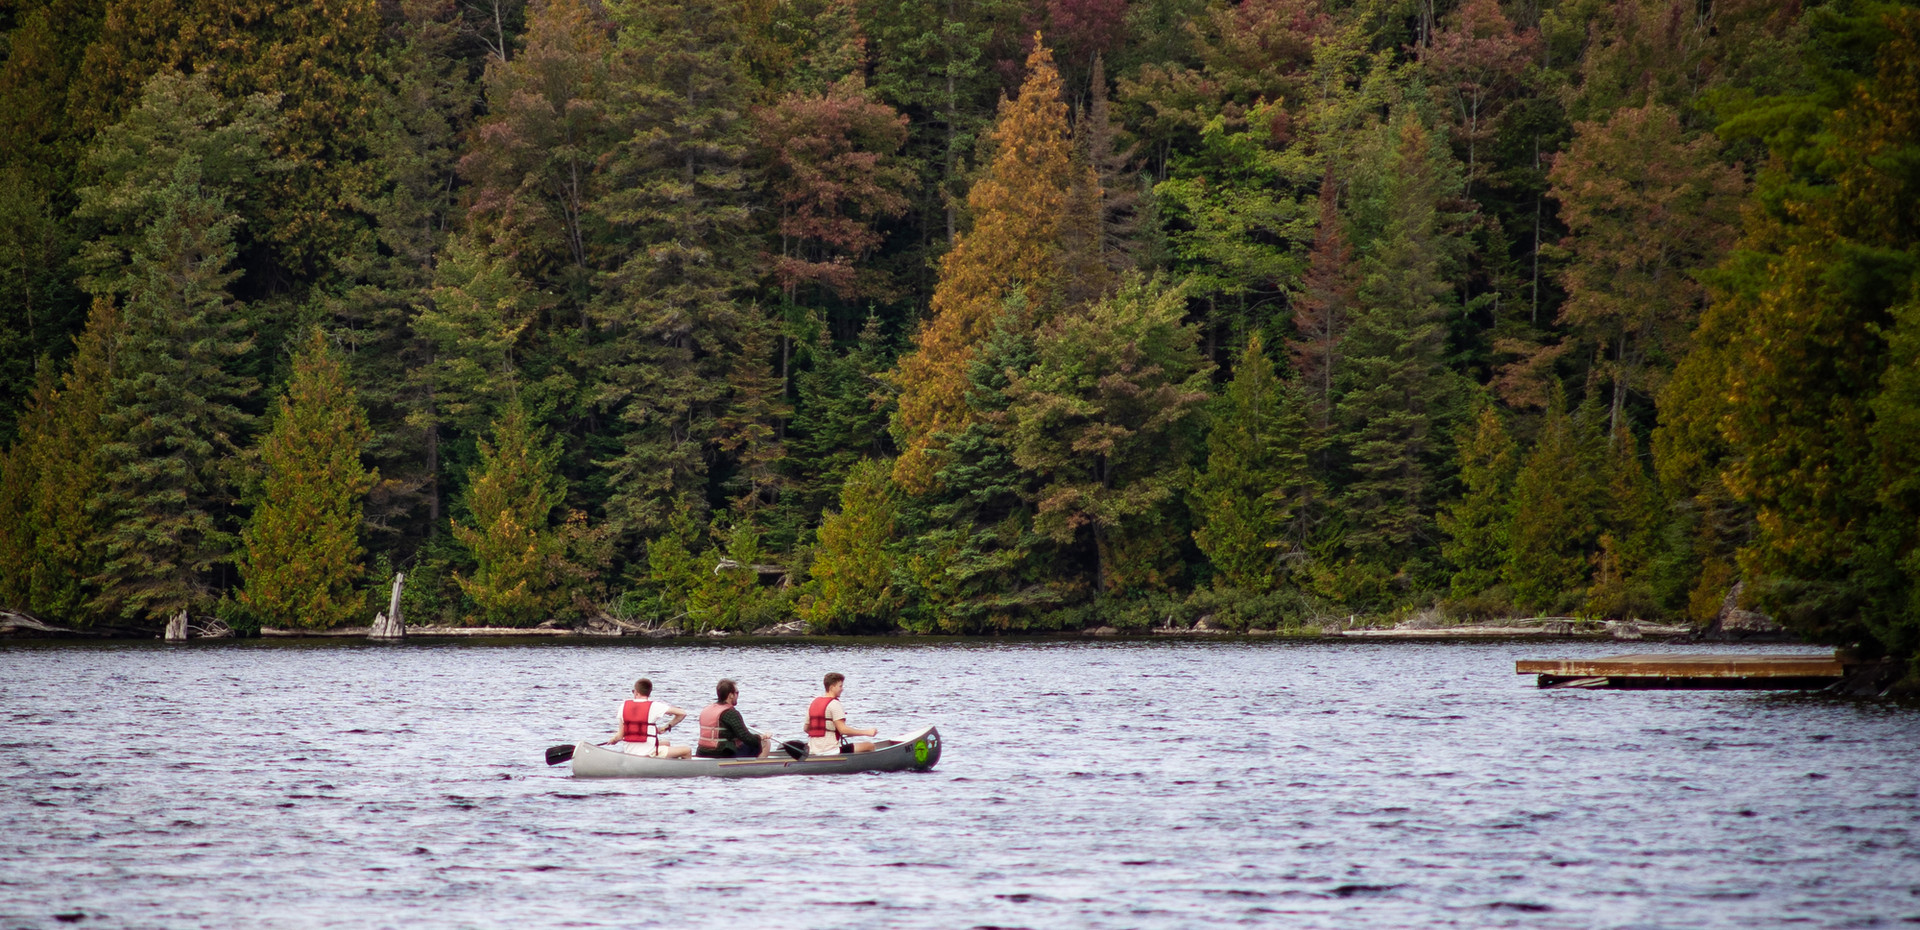 Canoe in one of the largest canoe parks in the world with maple hills, rocky ridges and pure beauty